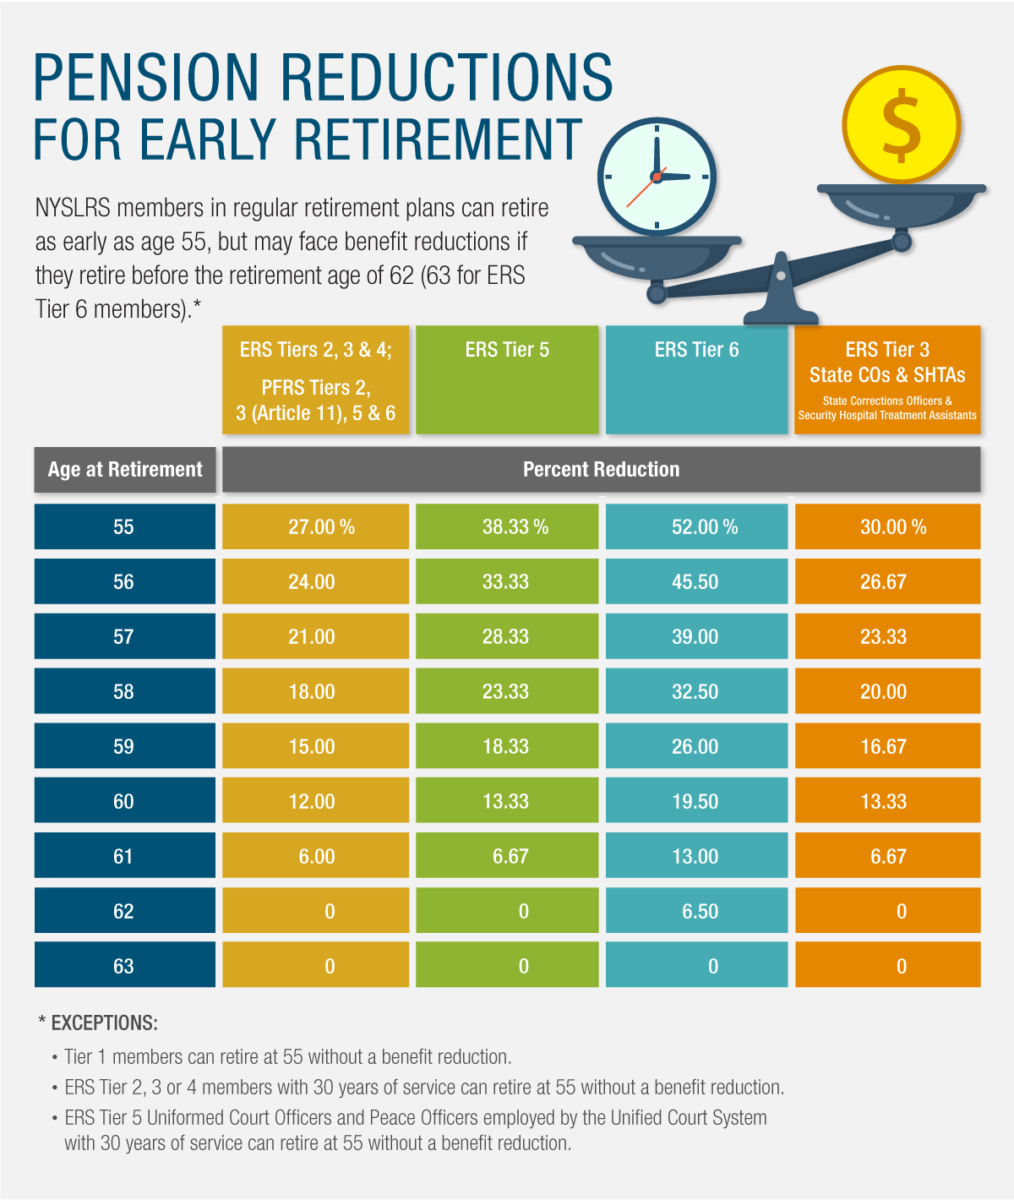 pension reductions based on retirement age